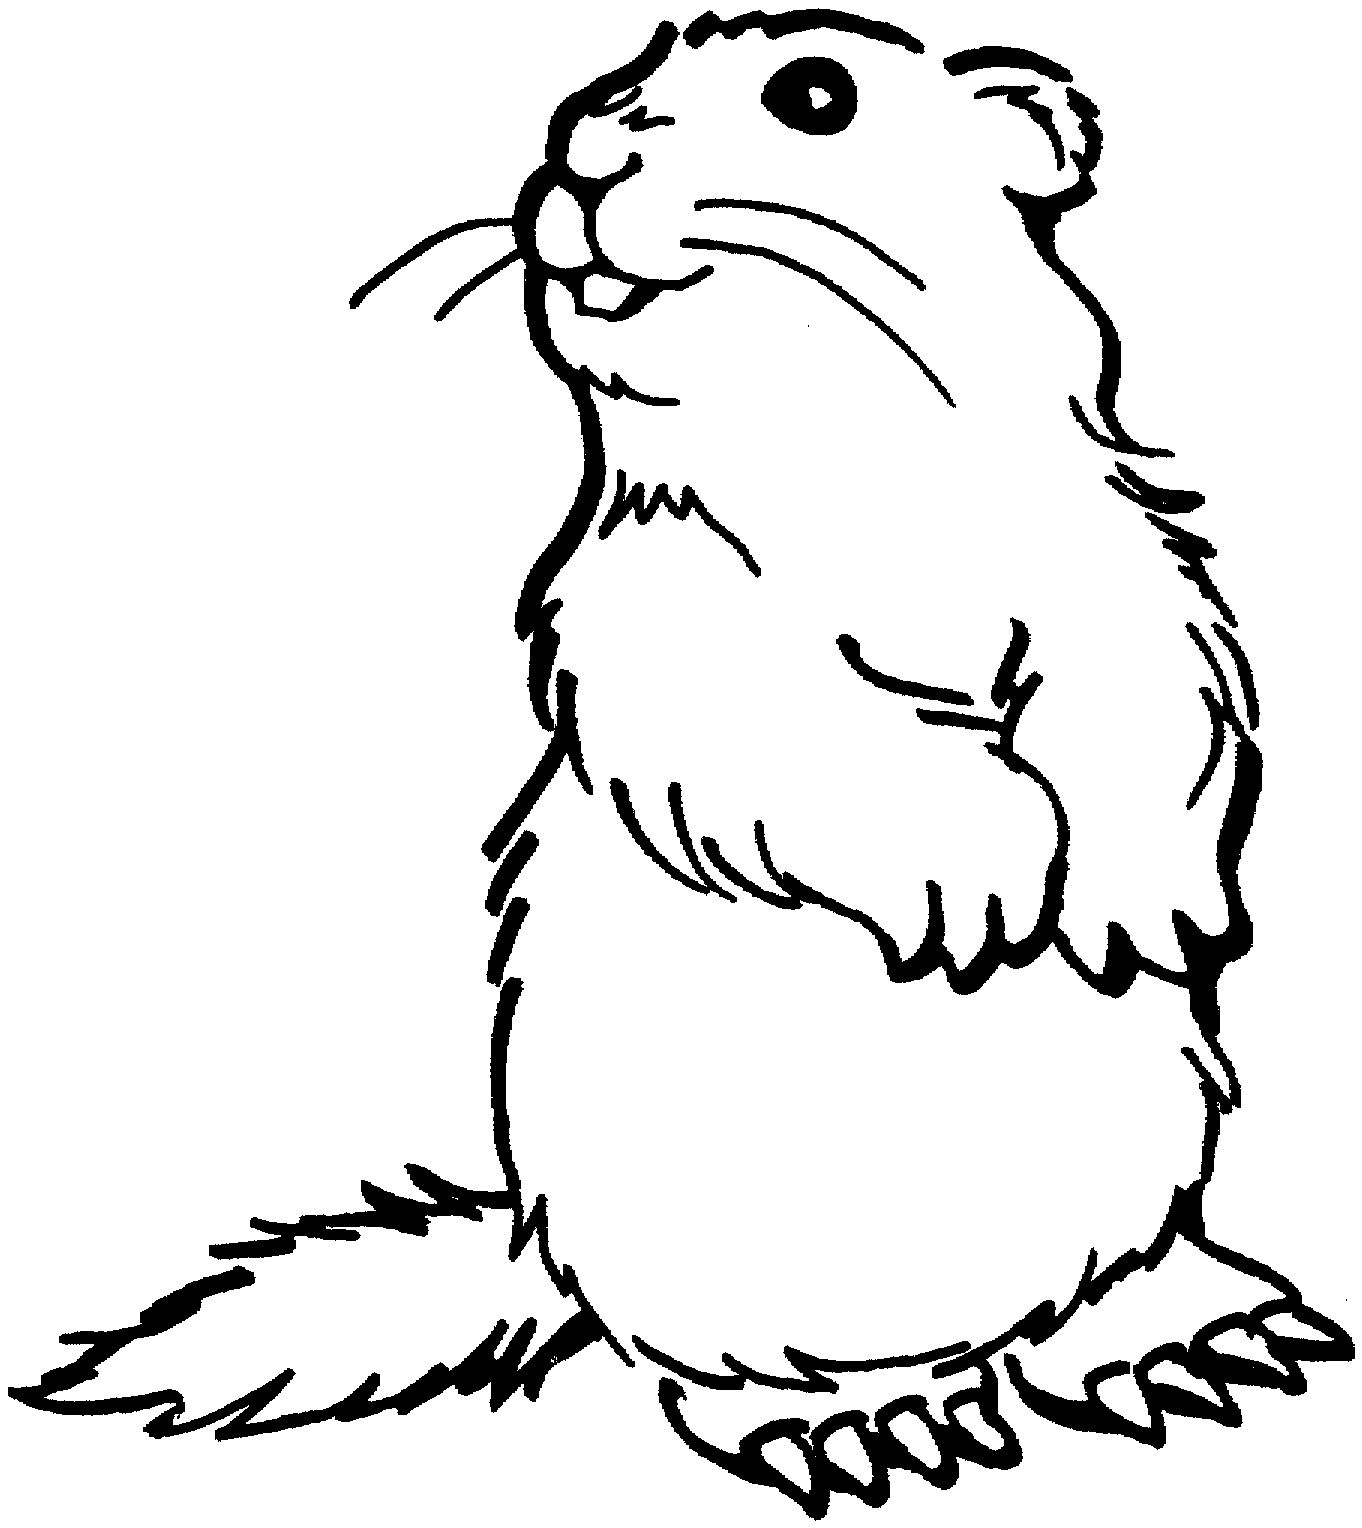 Grassland Animals Coloring Pages Free Animal Coloring Pages Dog Coloring Page Puppy Coloring Pages